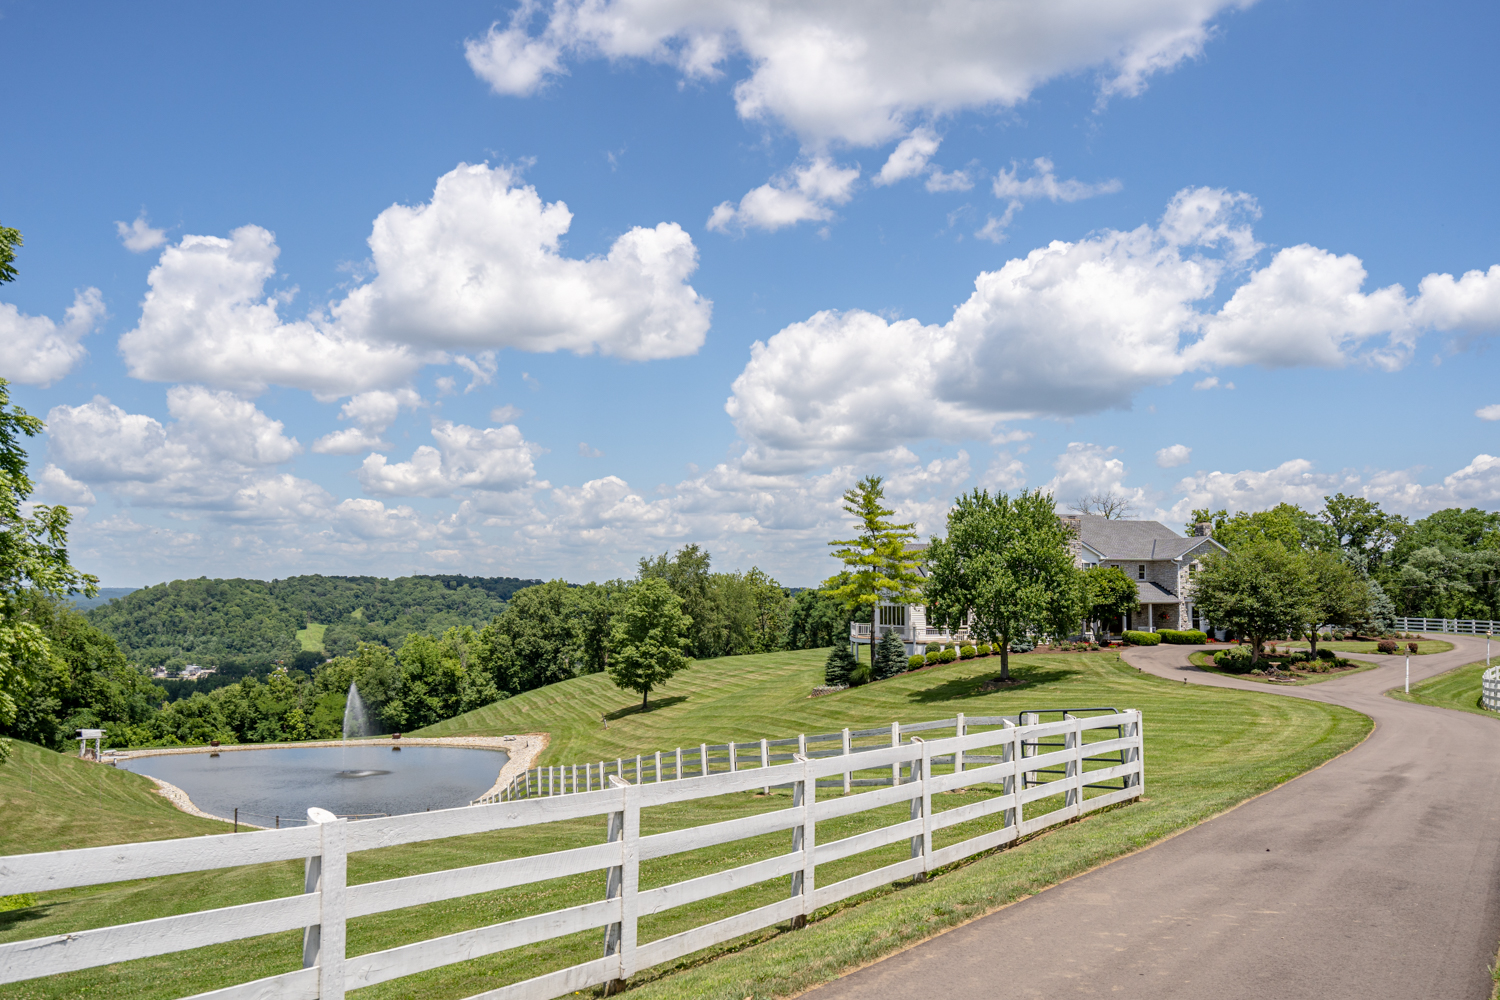 Valley View Farms, located at 10014 Mt. Nebo Road in Miami Township, is a 3-bed, 7-bath, 9,238-square-foot home that's listed for $1,950,000. Nestled on 77 sprawling acres of scenic landscape, this expansive estate can be found just west of downtown, offering all the amenities a homeowner of discerning taste seeks. / Image: Chris Farr // Published: 10.27.20